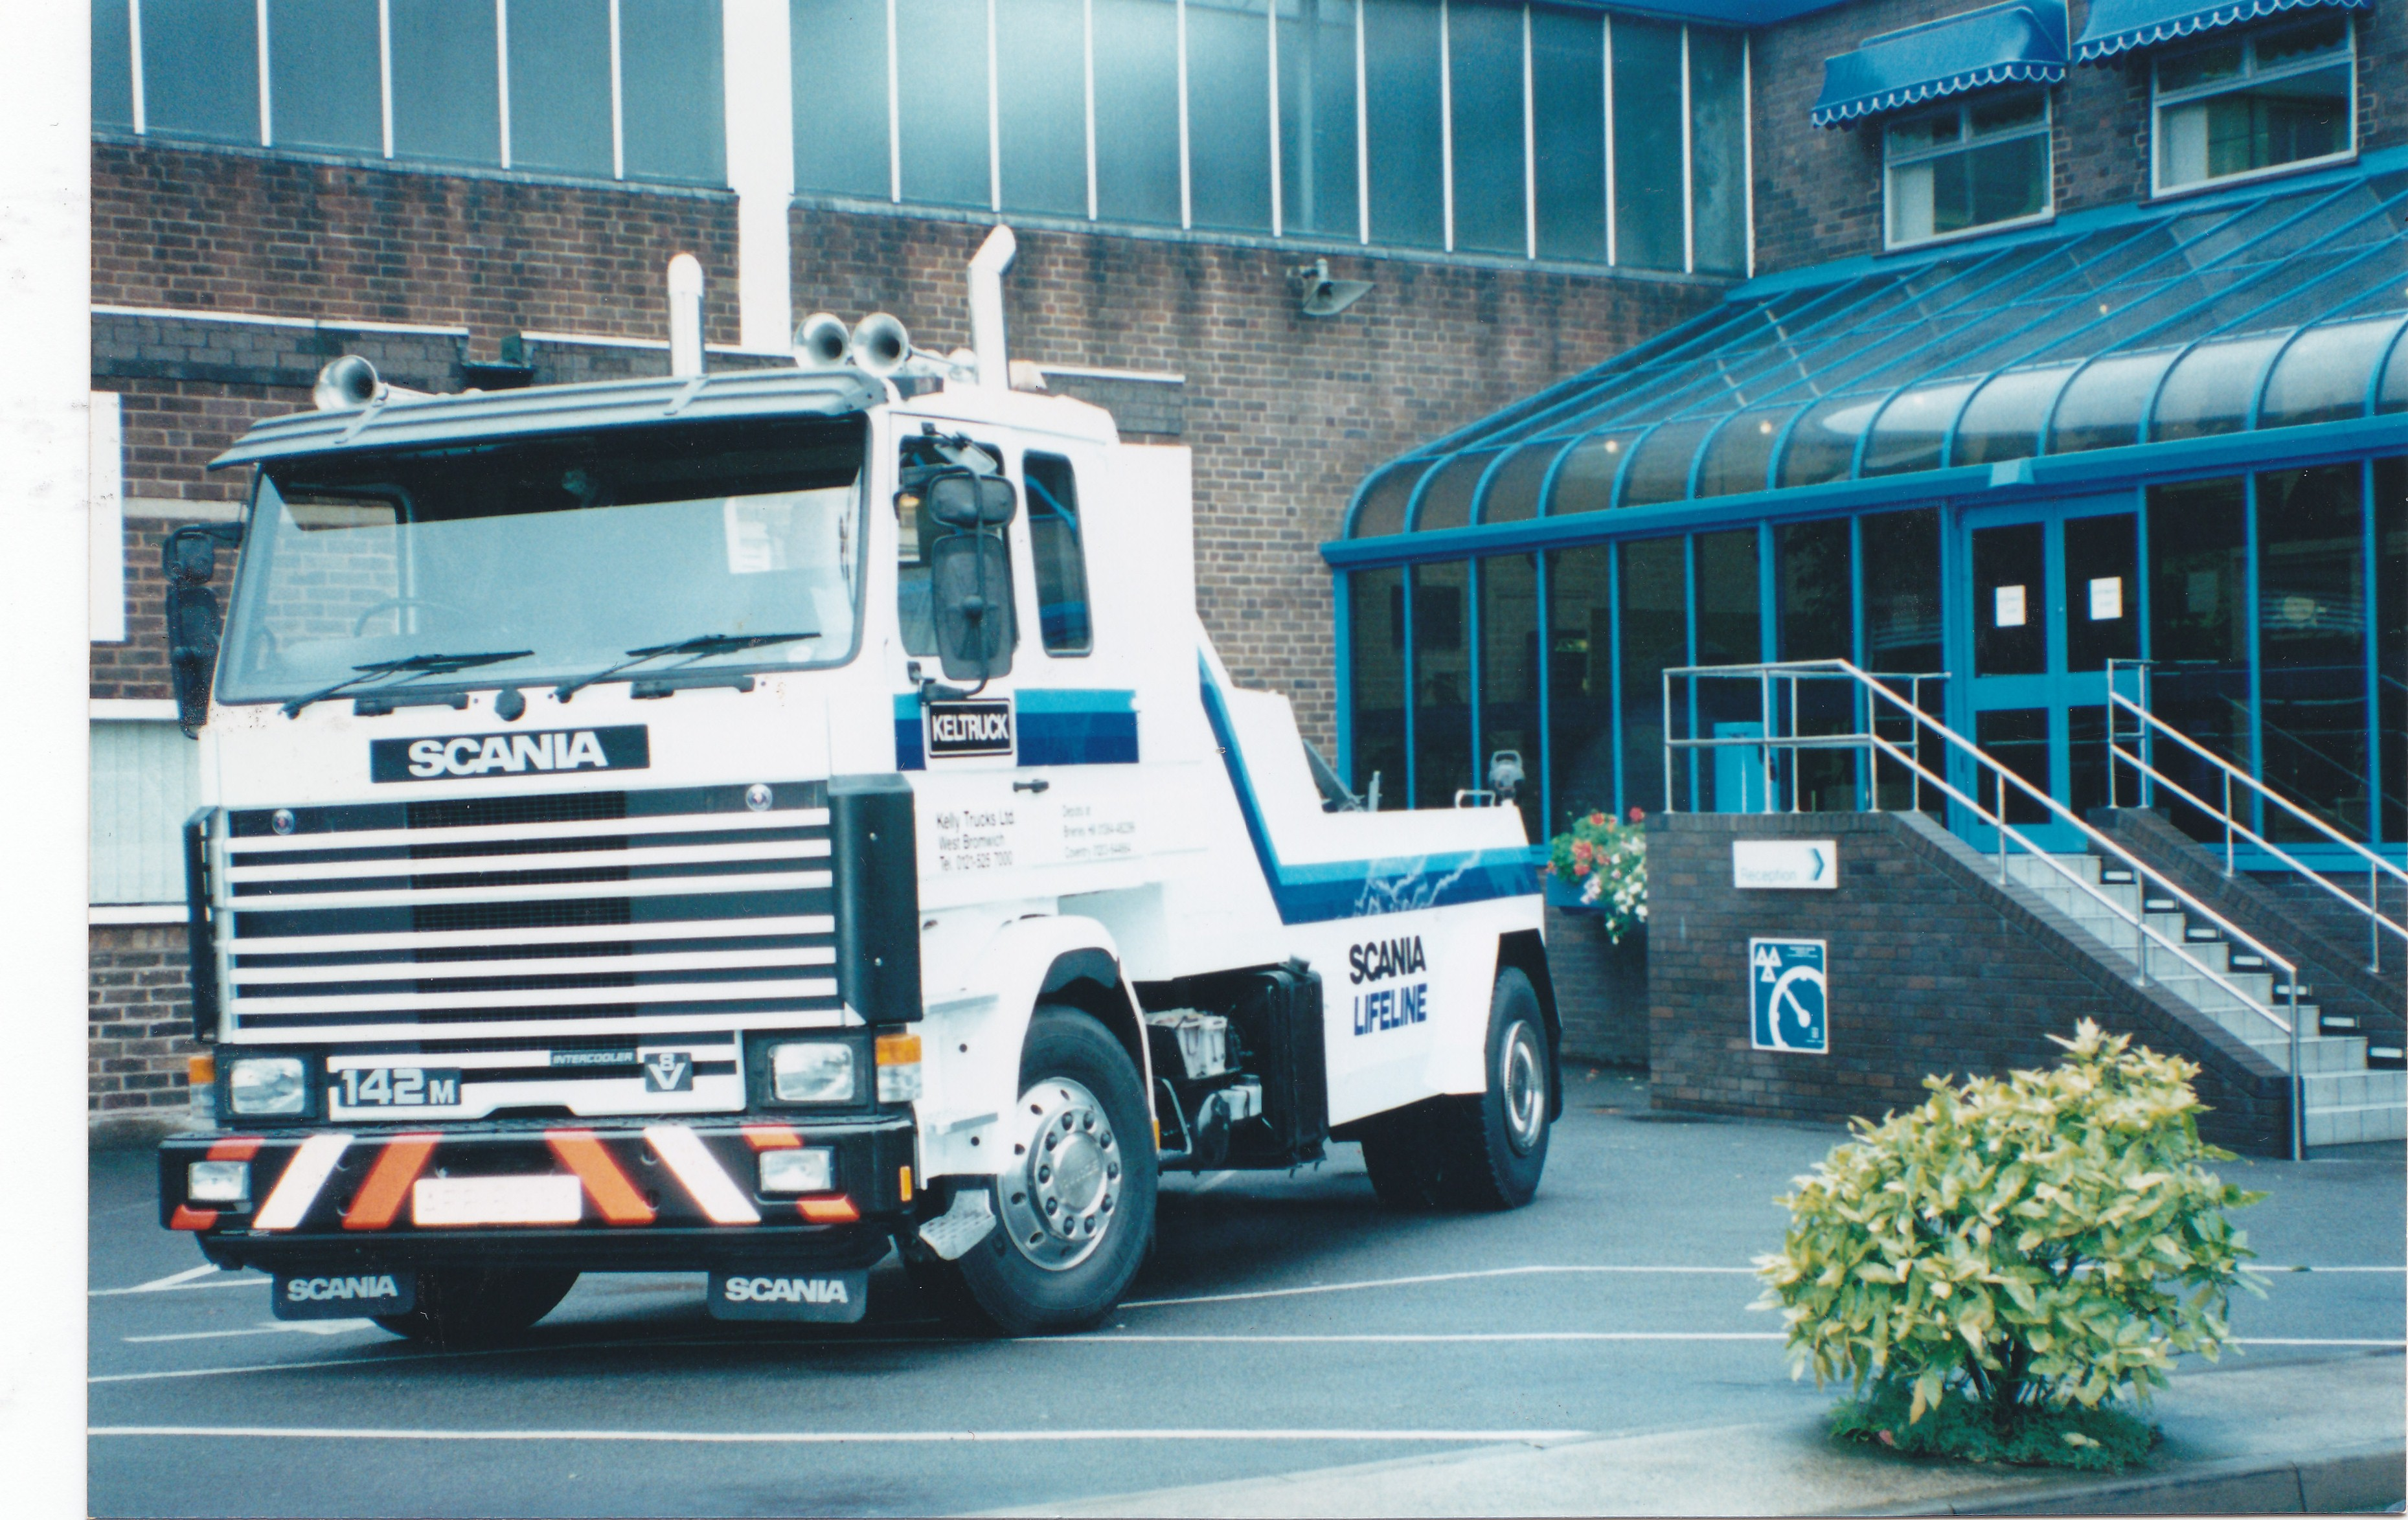 Scania R142 recovery vehicle outside Keltruck West Bromwich in the early 1990s.